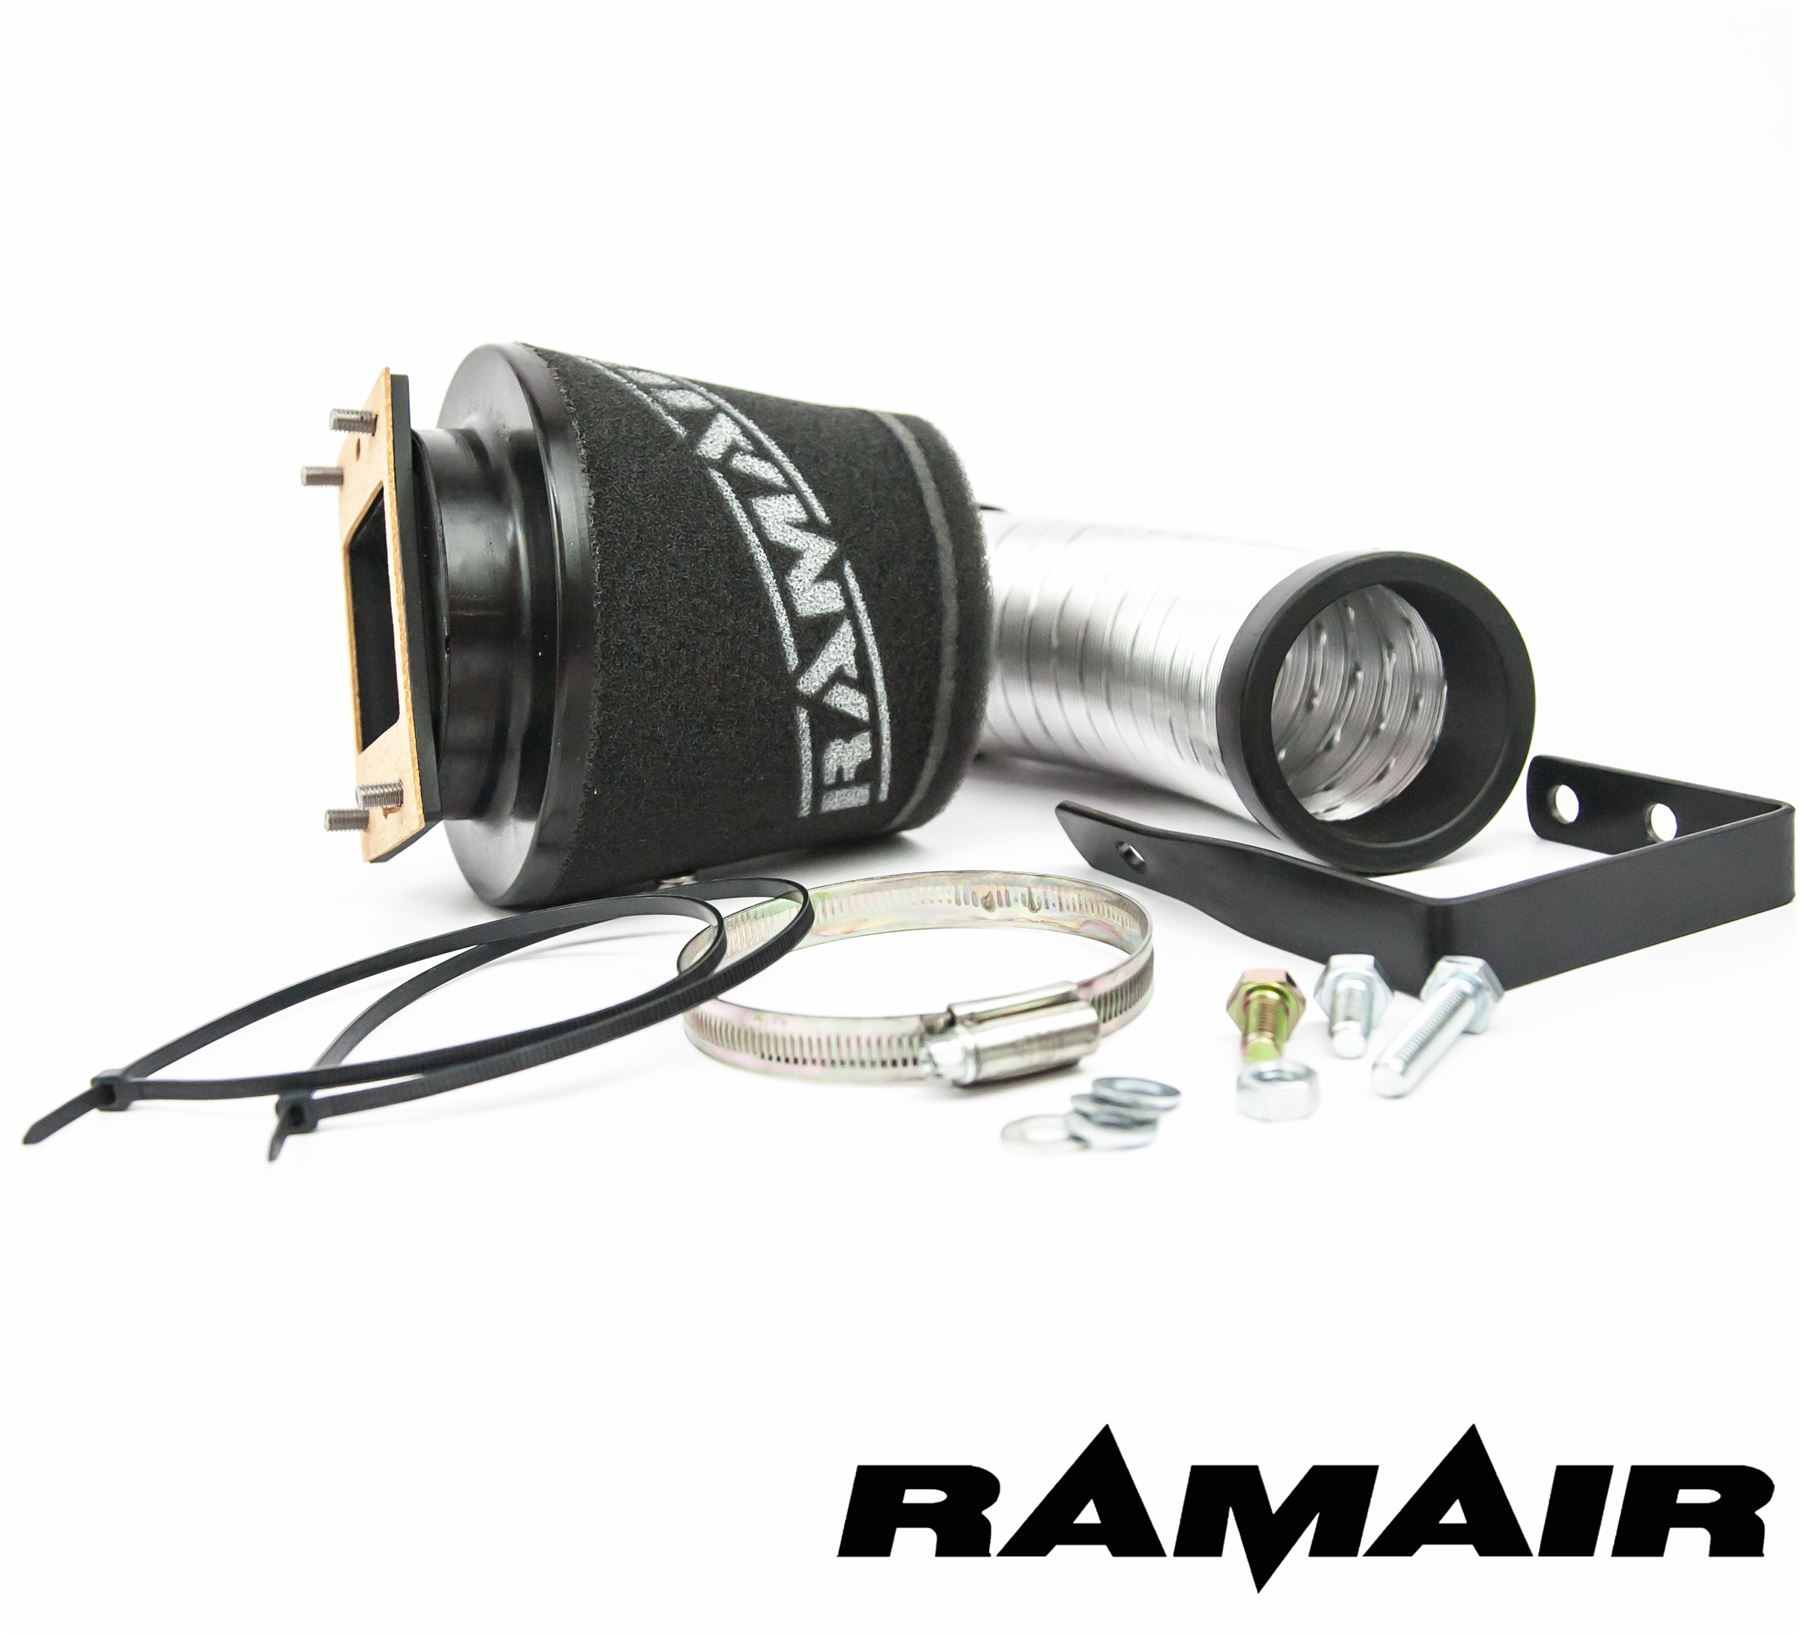 RAMAIR Induction Kit to Fit BMW Série 3 E36 316i 318i 318is Inc Compact